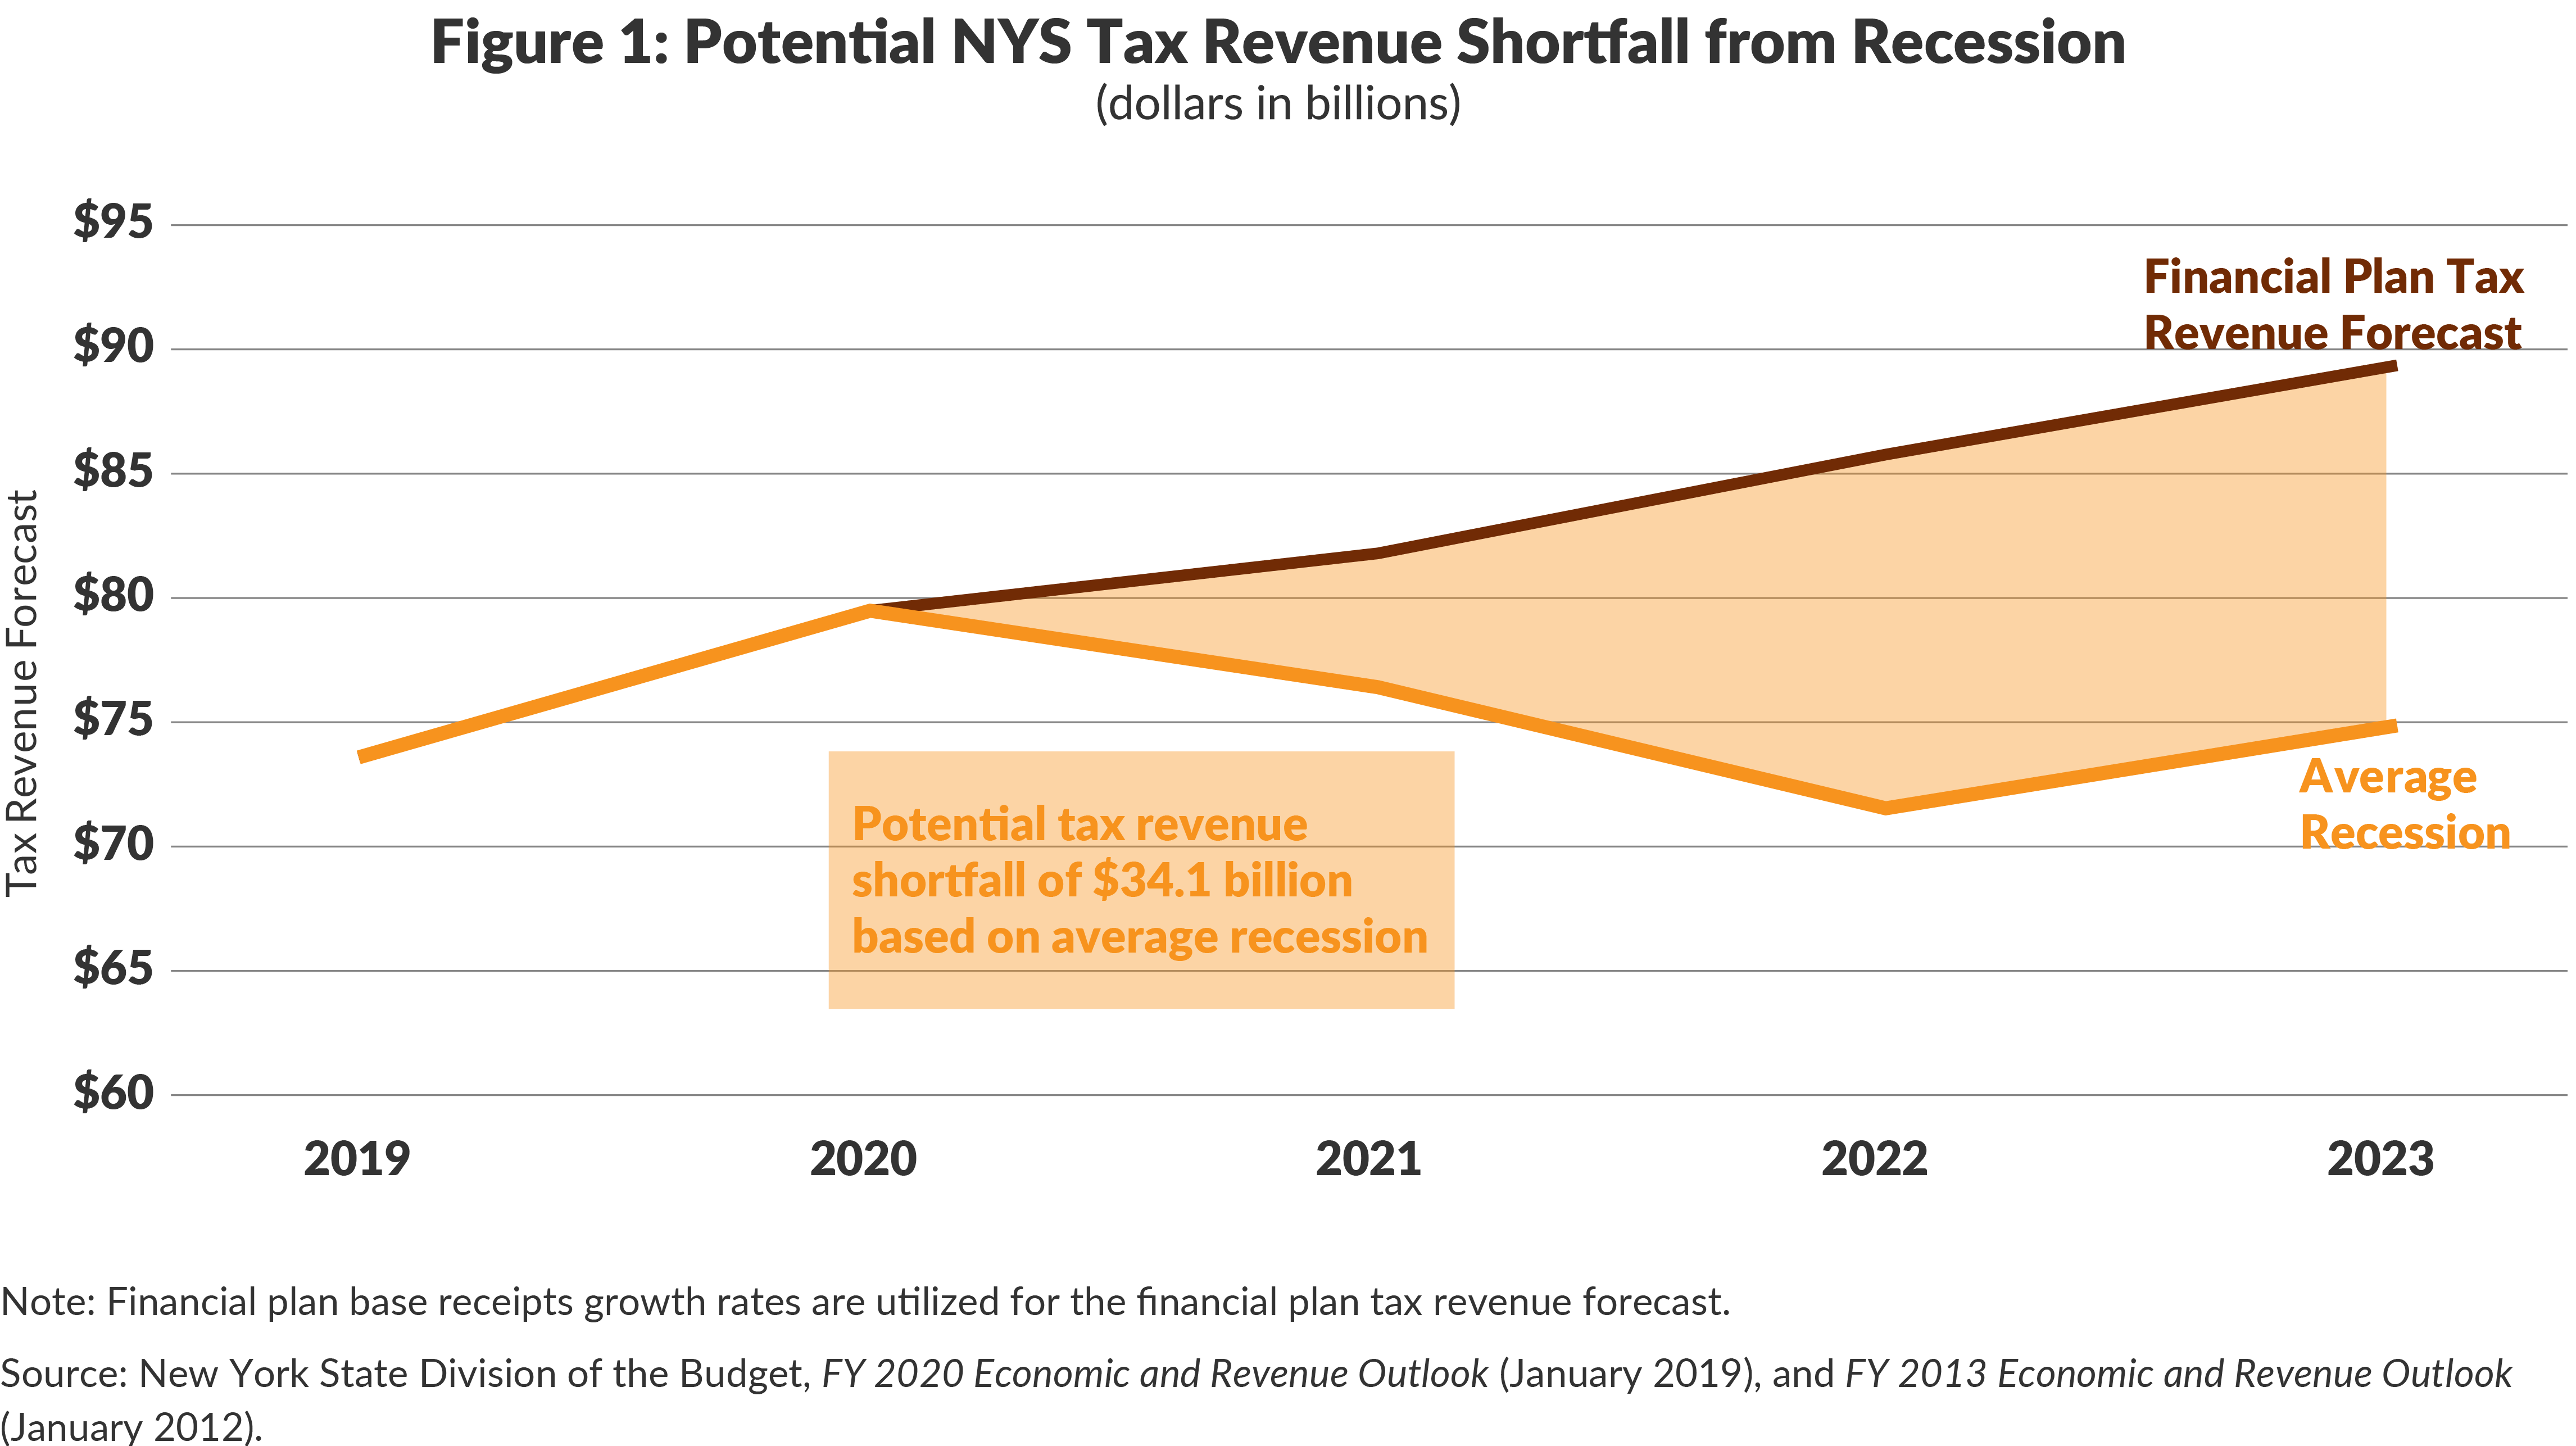 Figure 1: Potential NYS Tax Revenue Shortfall from Recession